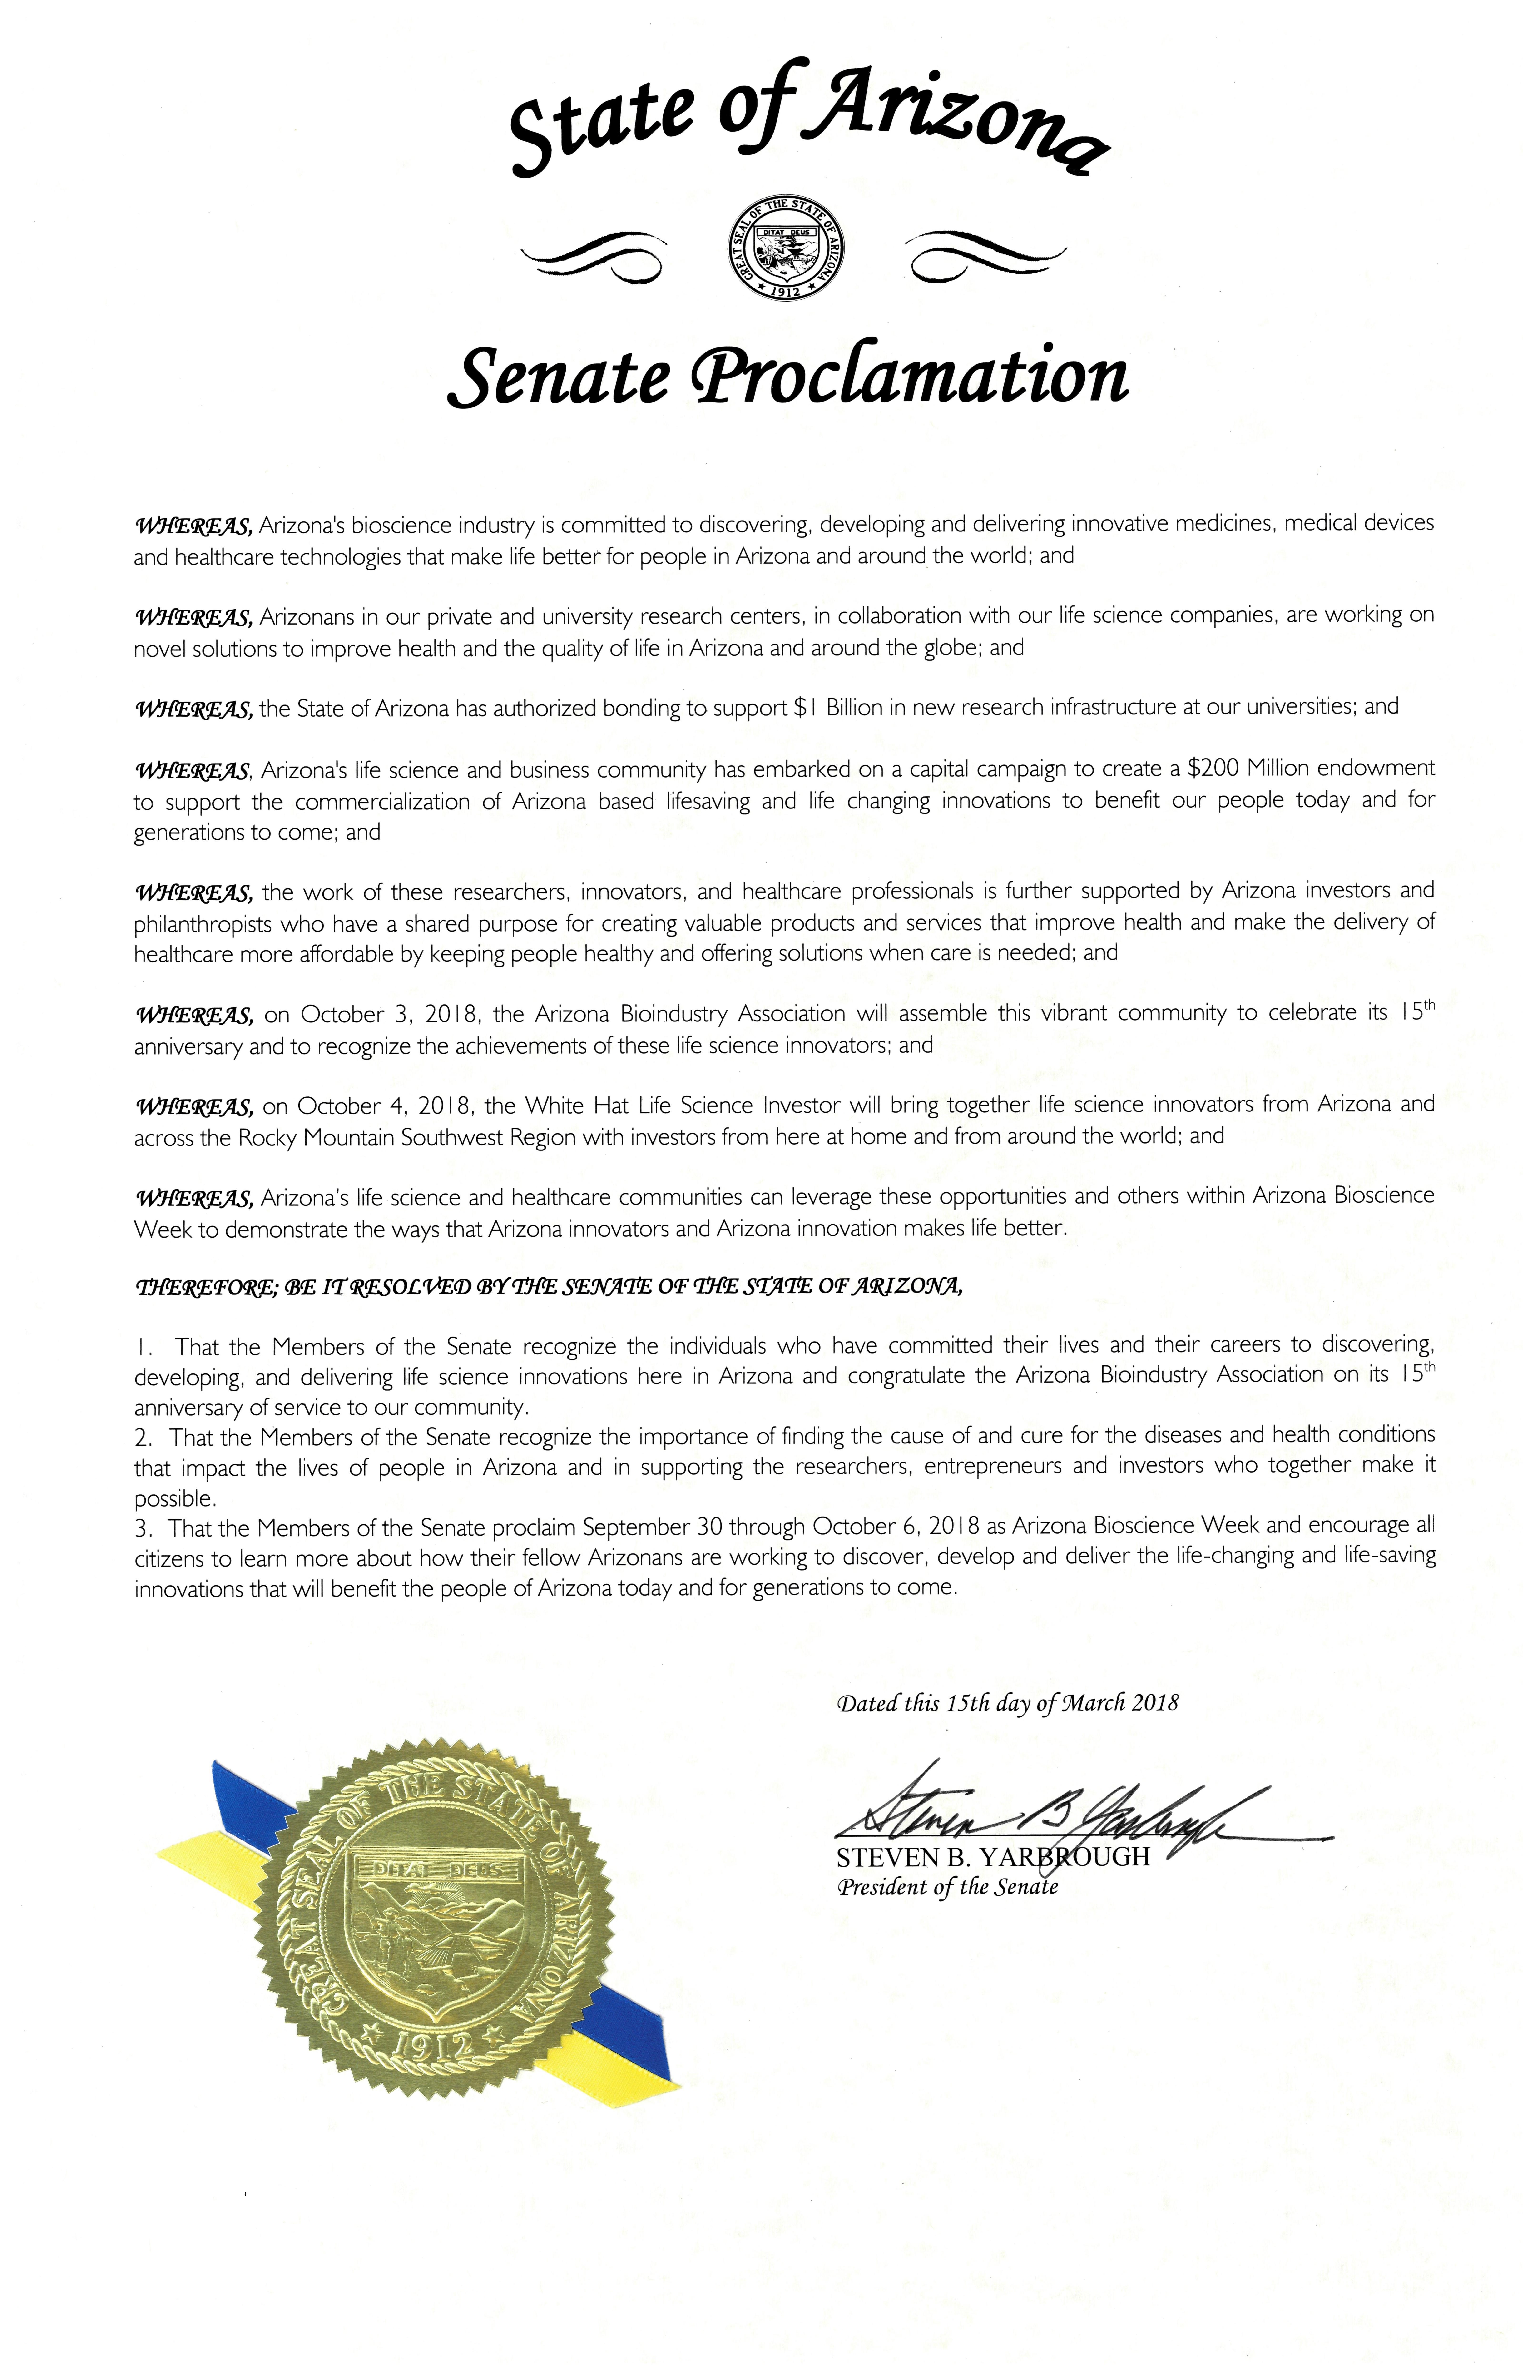 ... develop, and deliver lifesaving and life changing innovations and  proclaimed September 30 to October 6, 2018 as Arizona Bioscience Week.